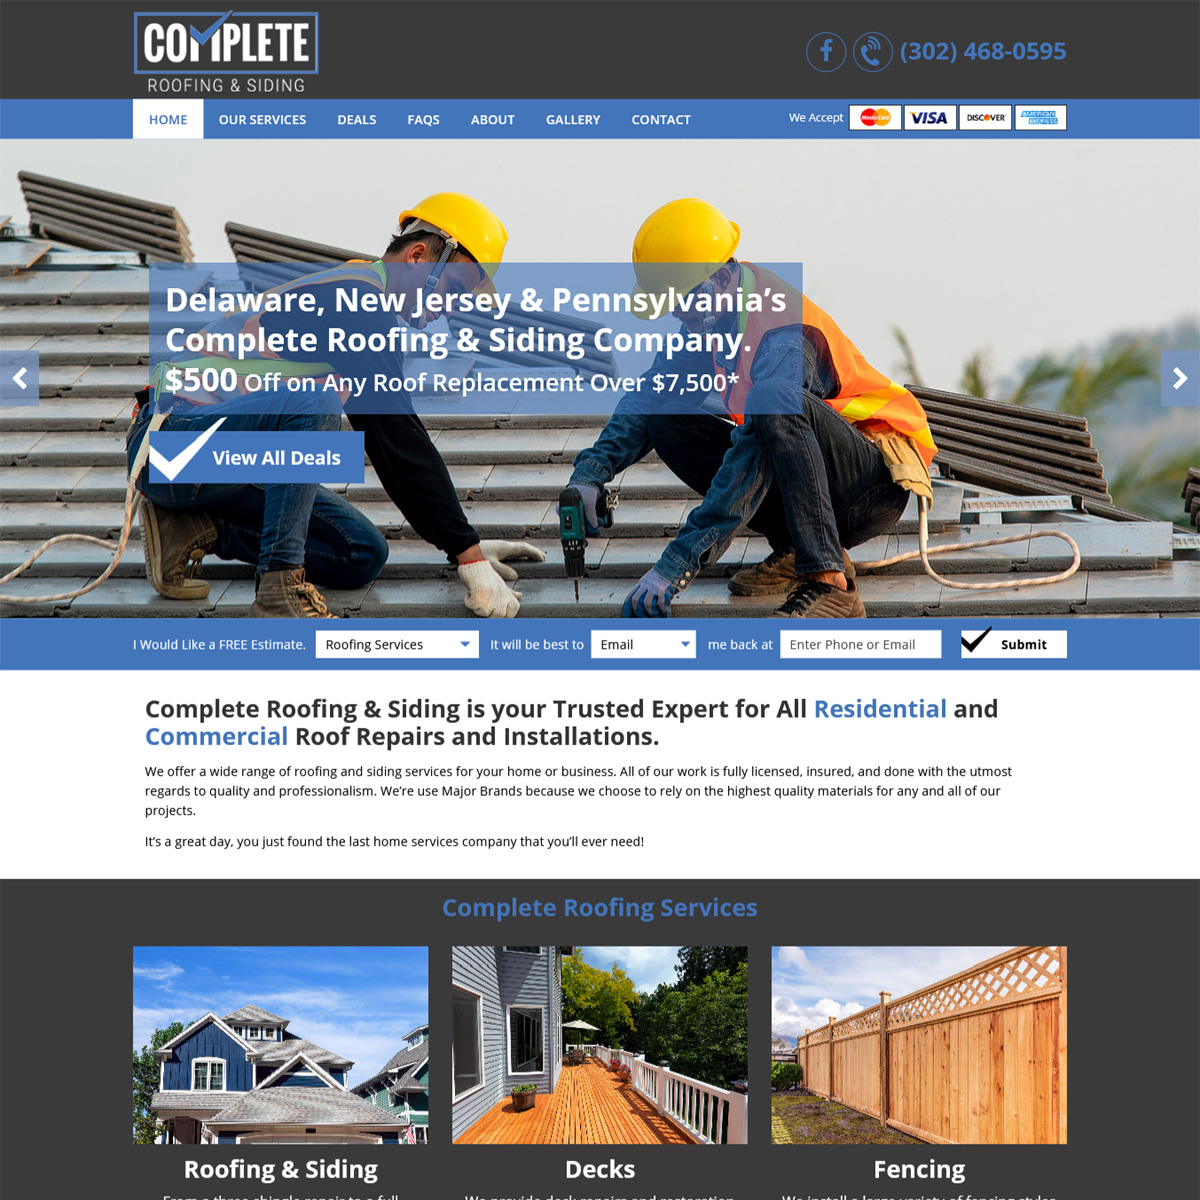 Complete Roofing & Siding Website Design